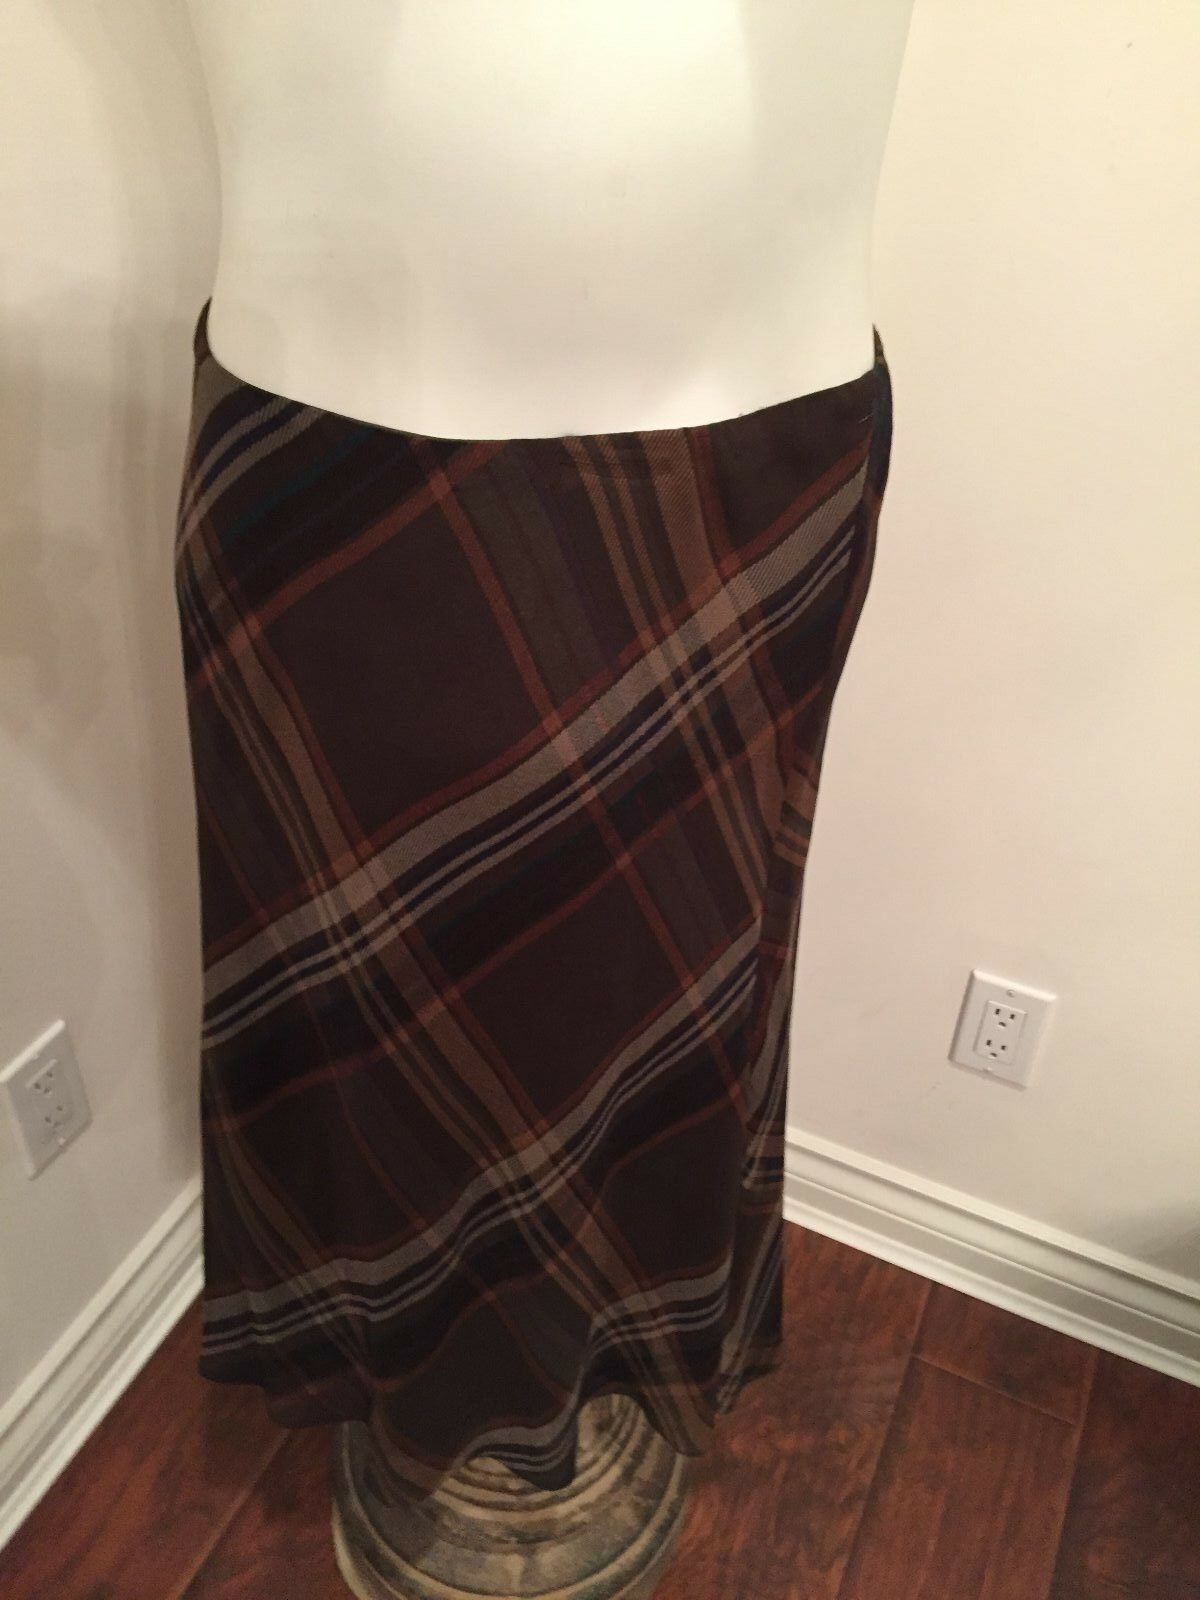 RALPH LAUREN, WOMEN'S Brown Plaid 100% Silk Knee Length Lined Skirt Size Medium